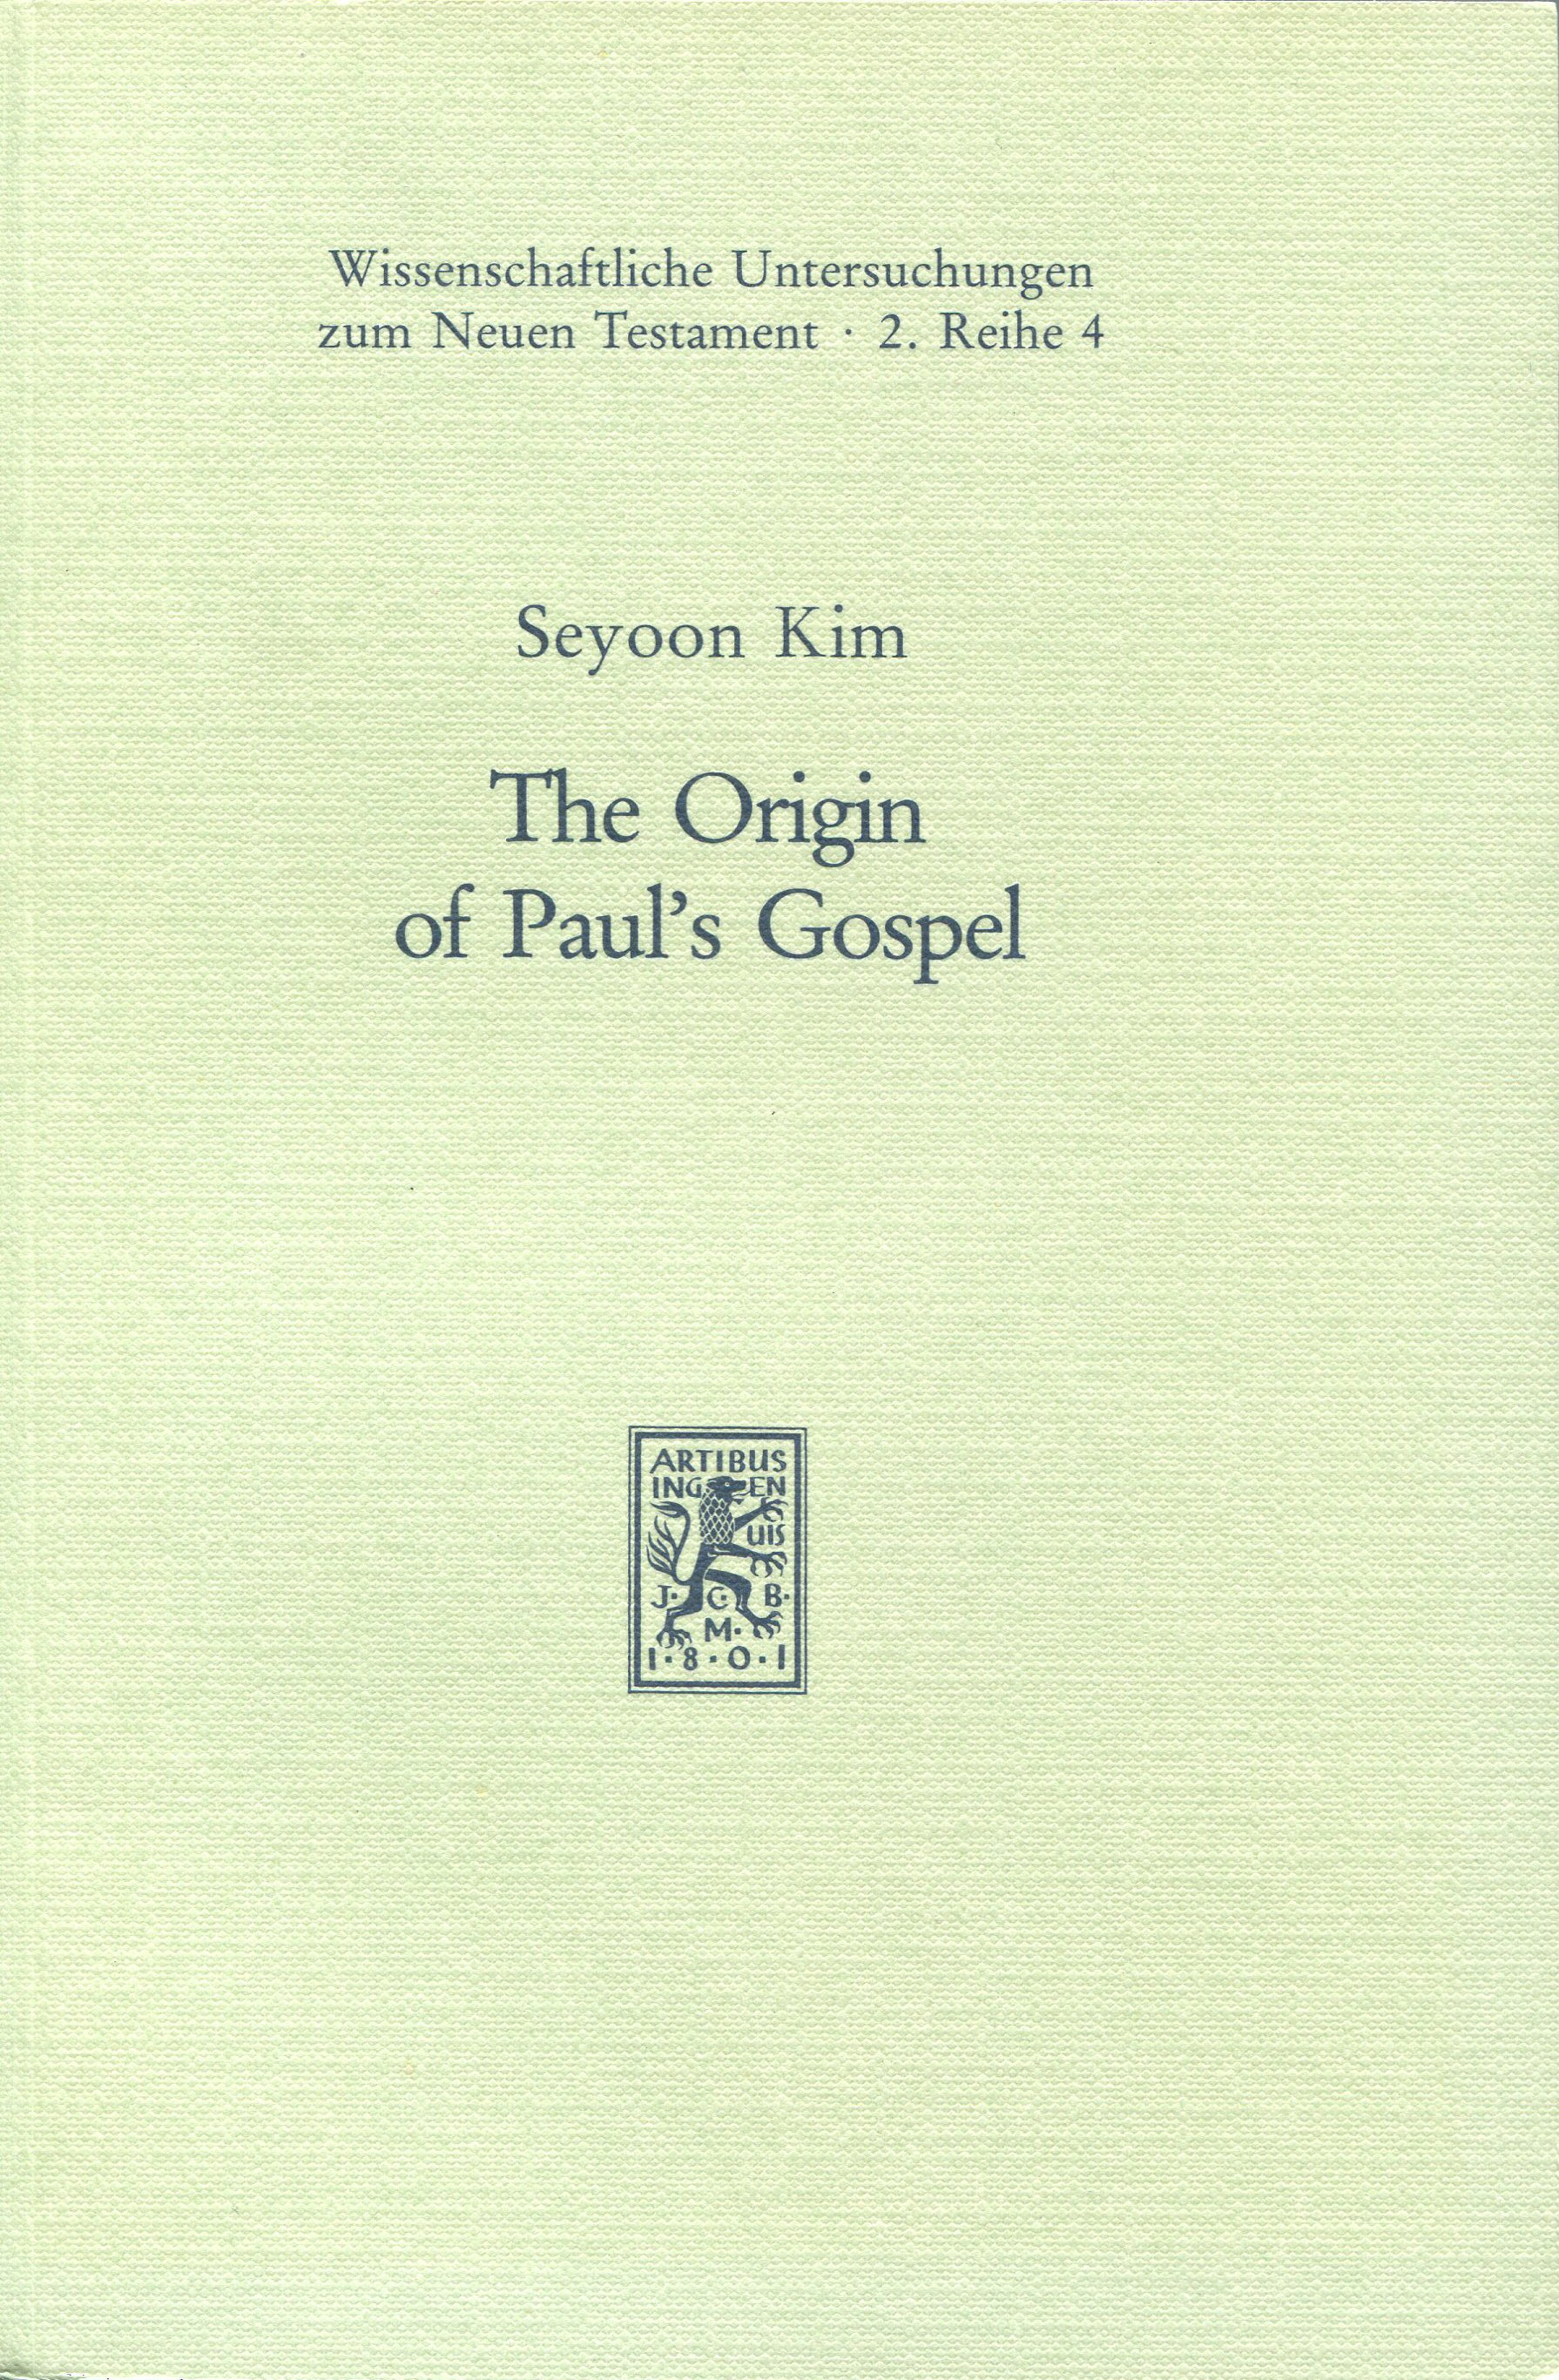 The Origin of Paul's Gospel